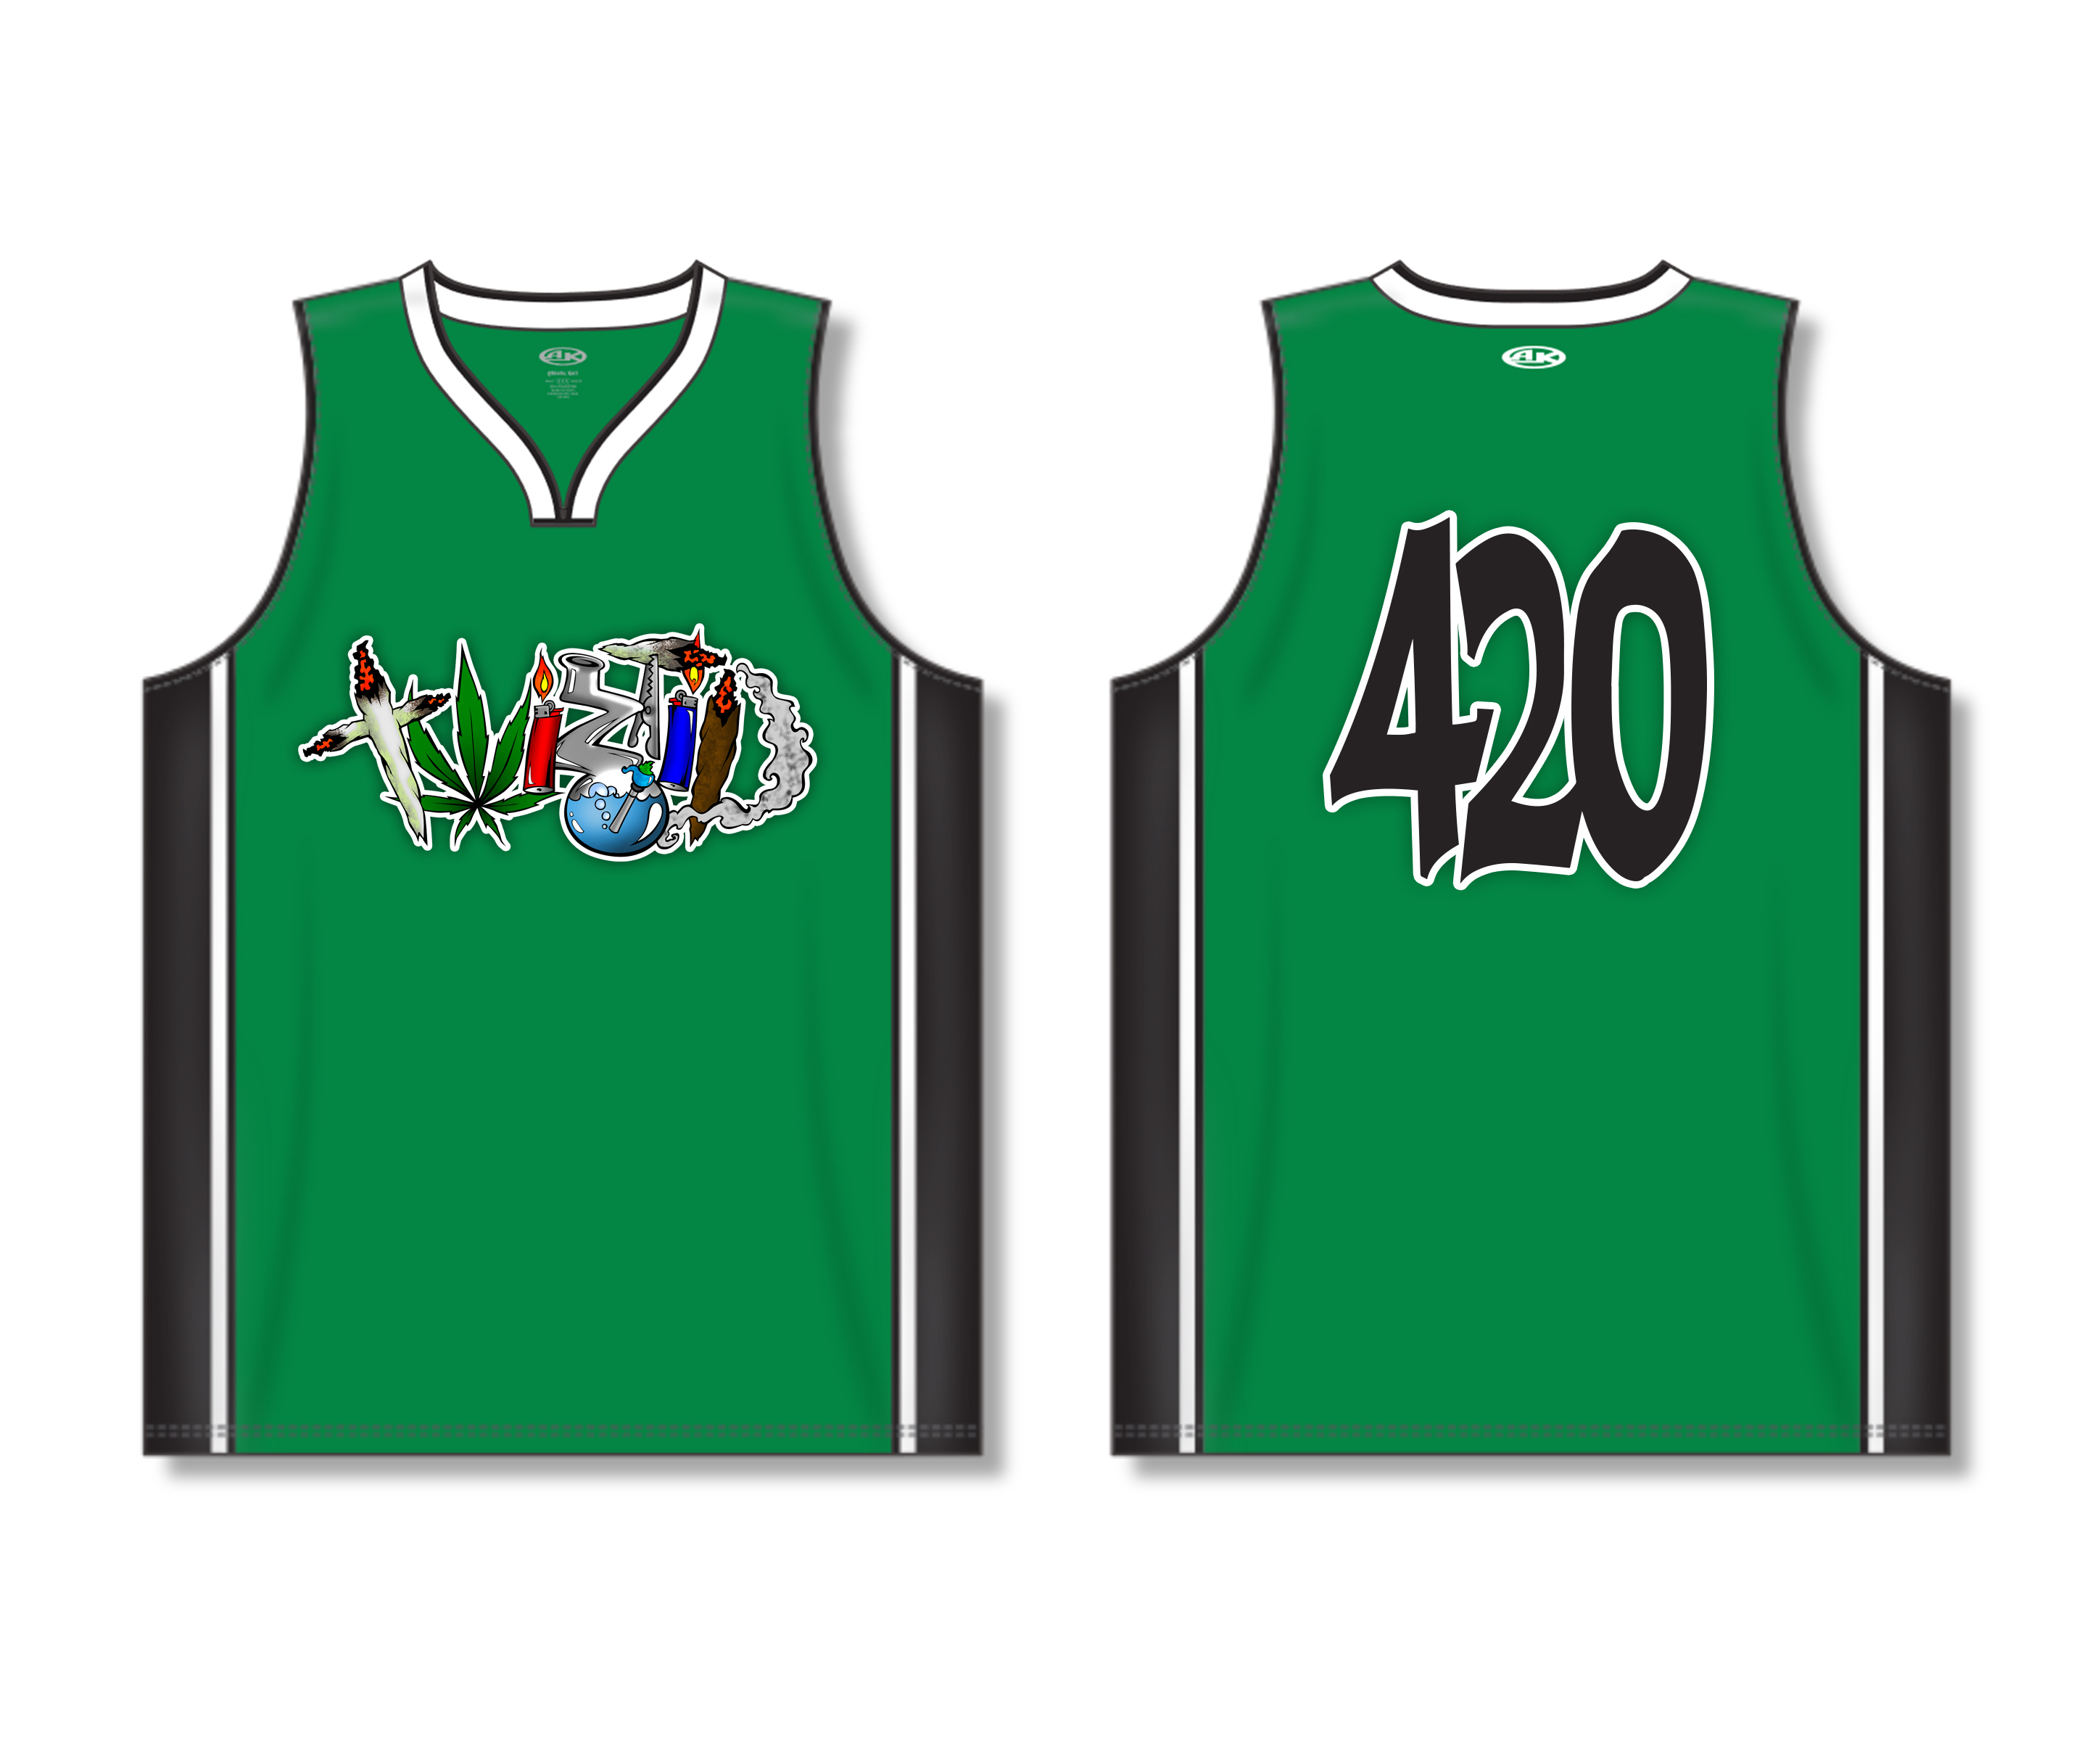 b00e0761aa52 Jersey Shirts Basketball